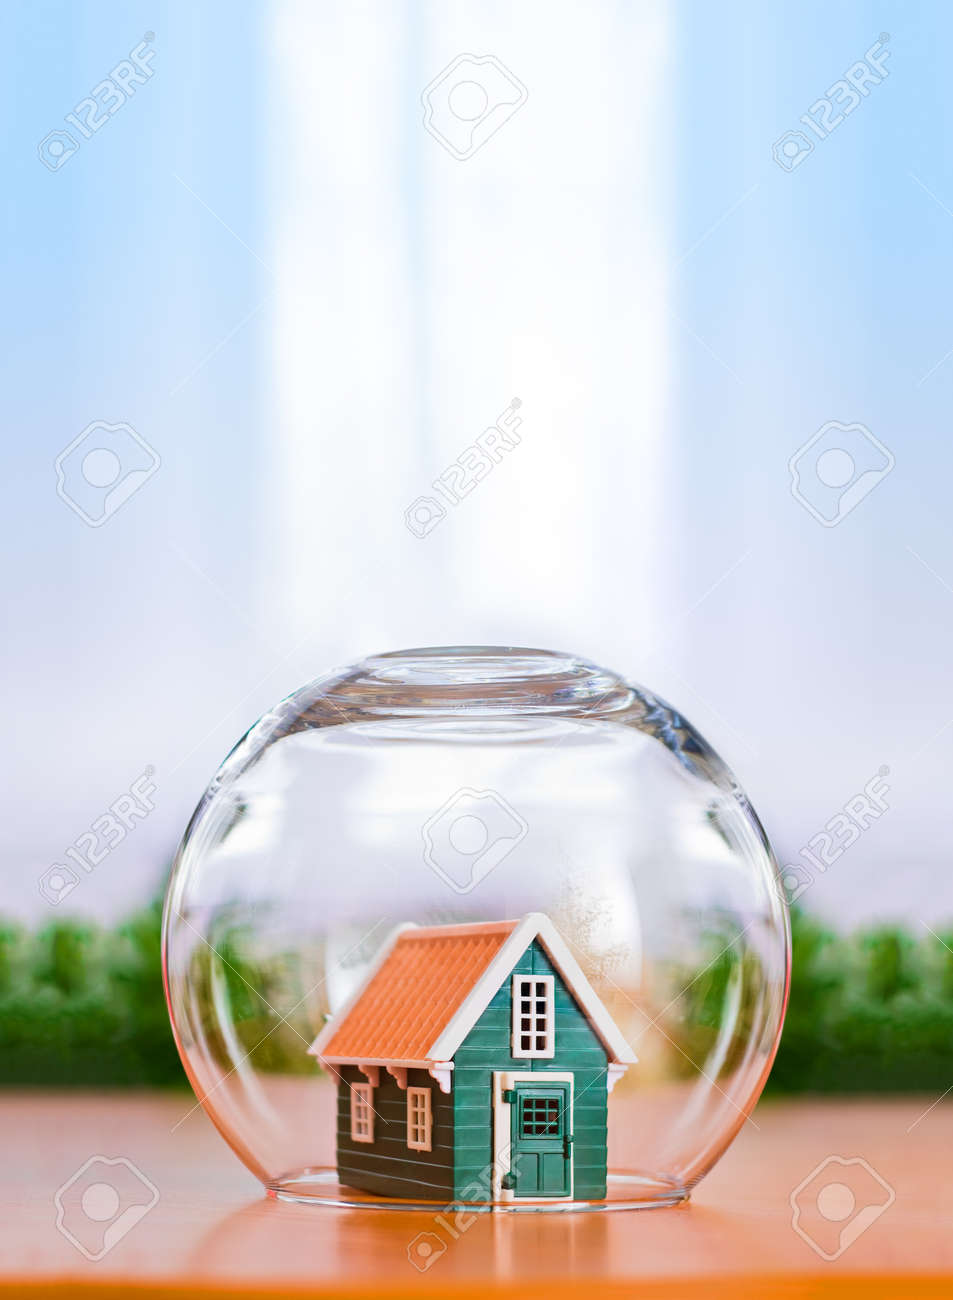 Insured house concept. Toy house protected in glass sphere with copy space above - 35244009